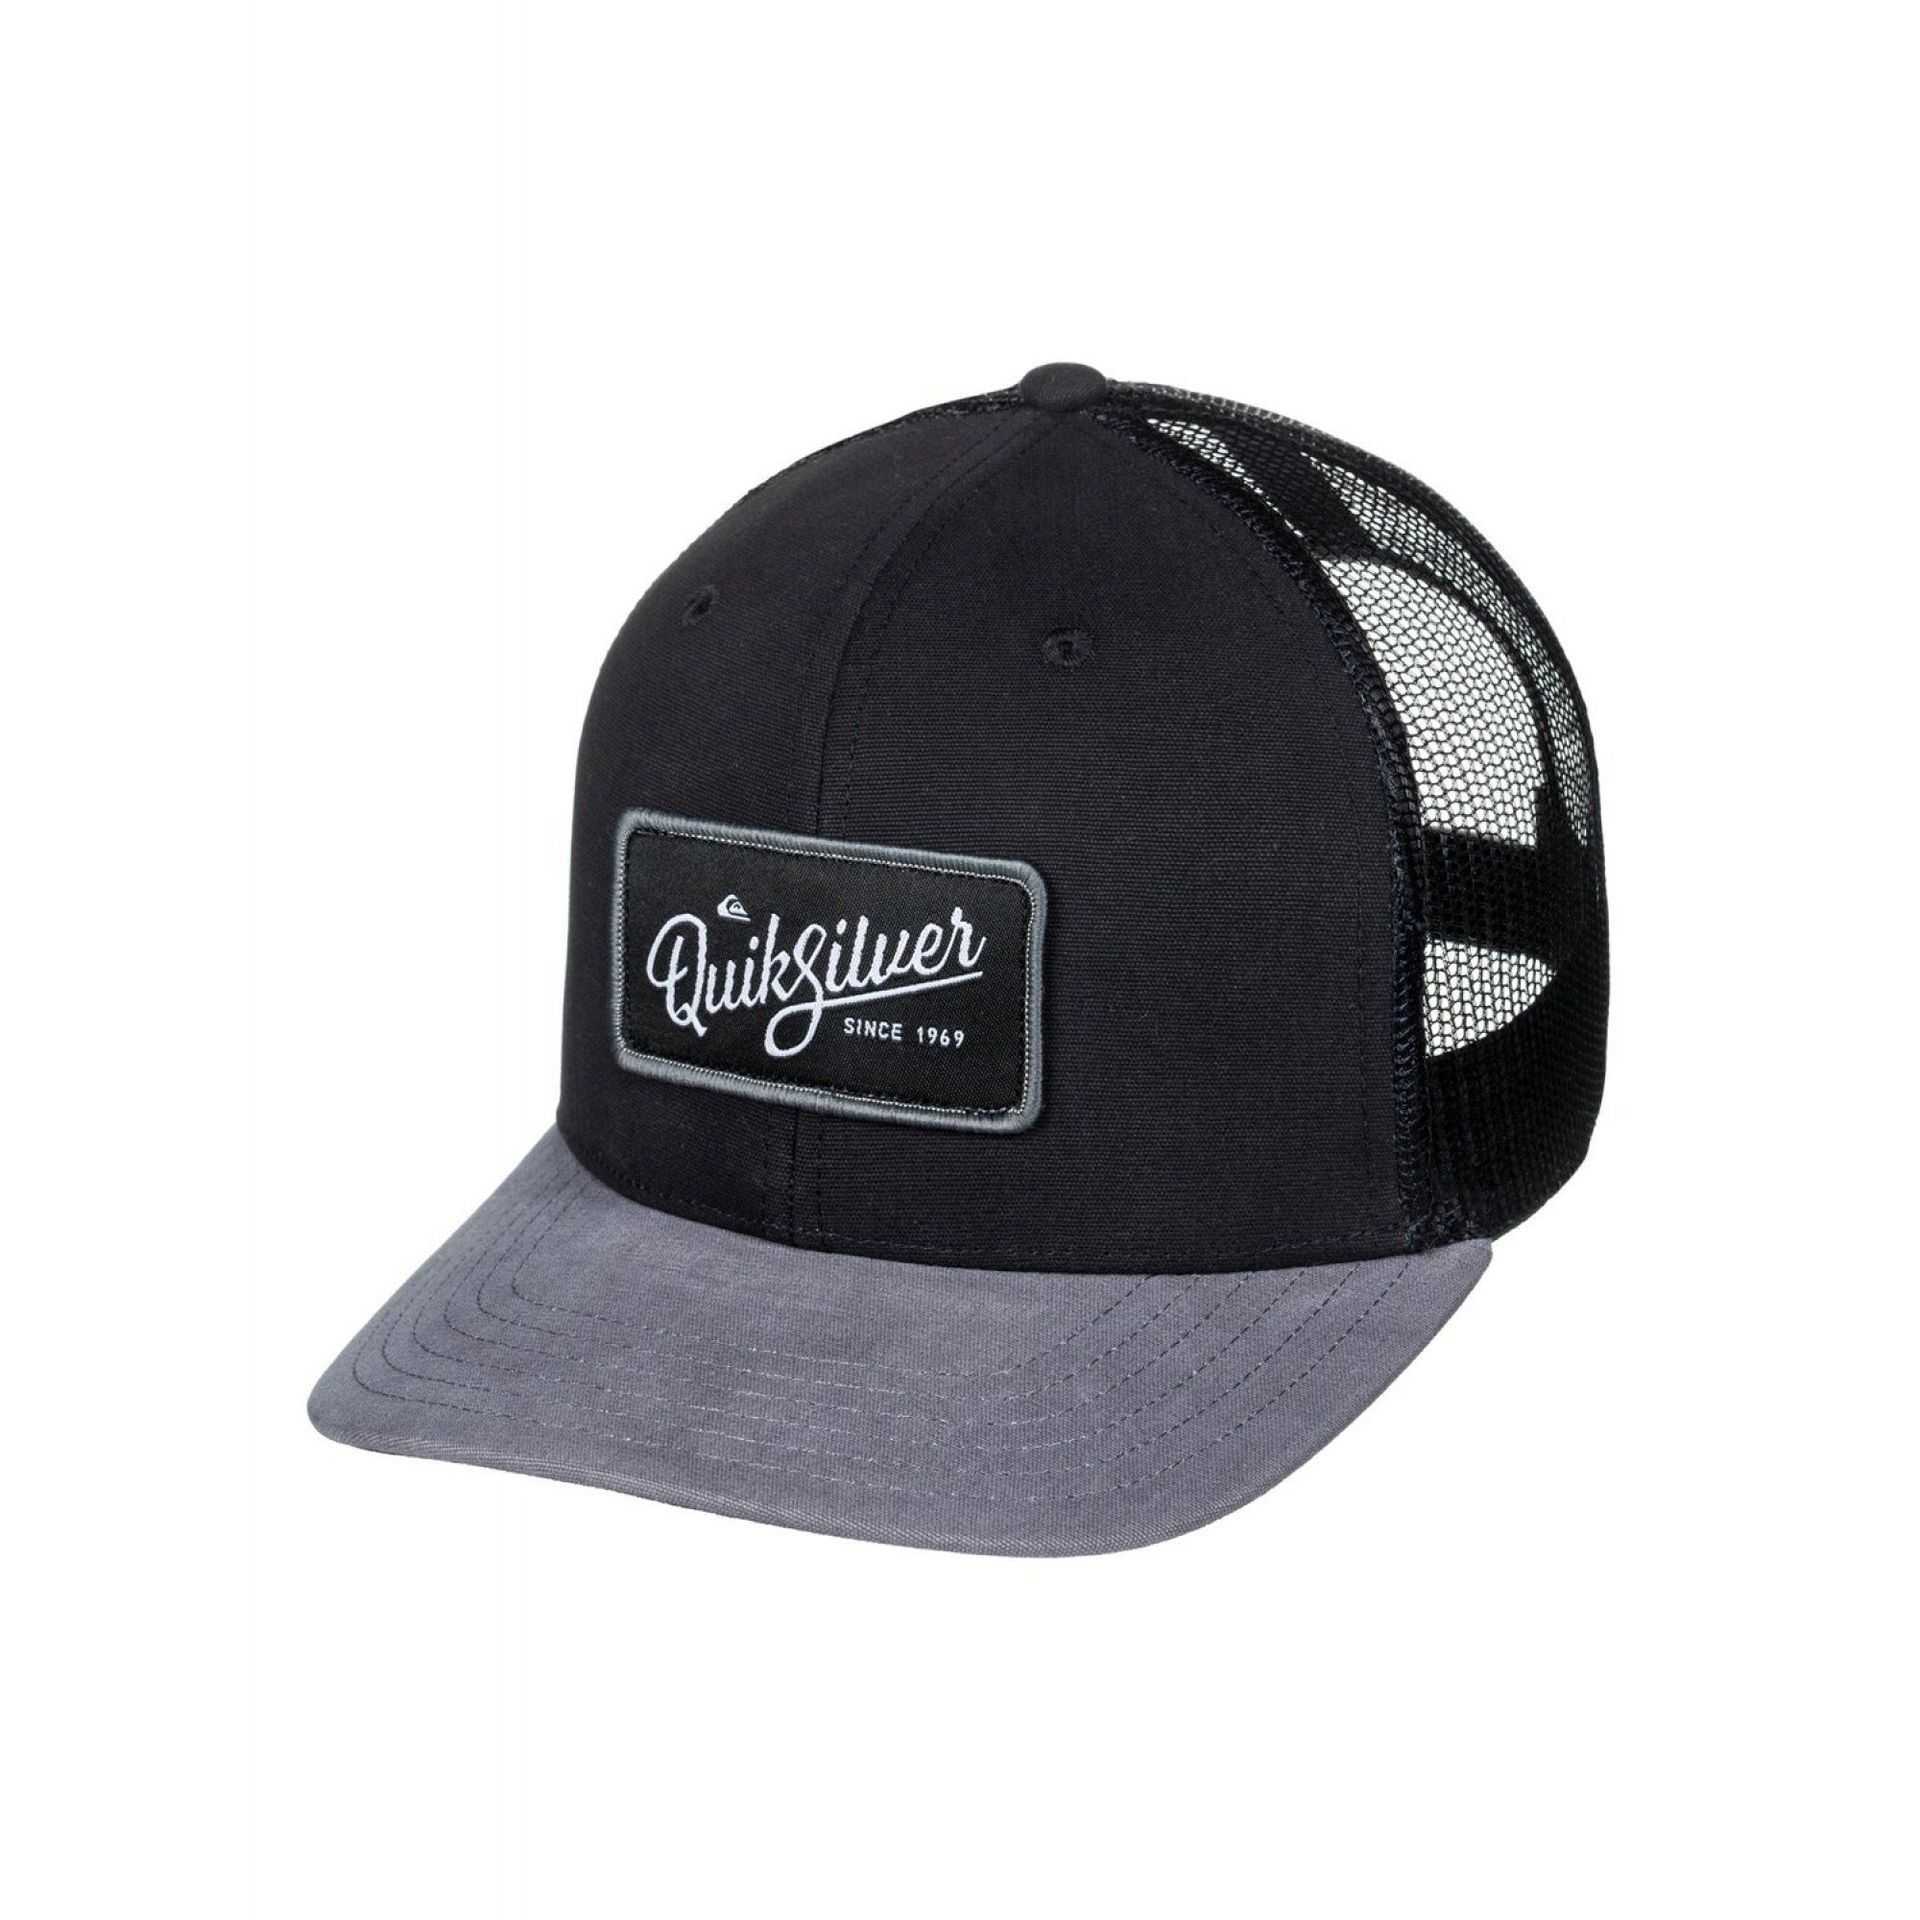 CZAPKA DASZKIEM QUIKSILVER BLOCKED OUT TRUCKER BLACK